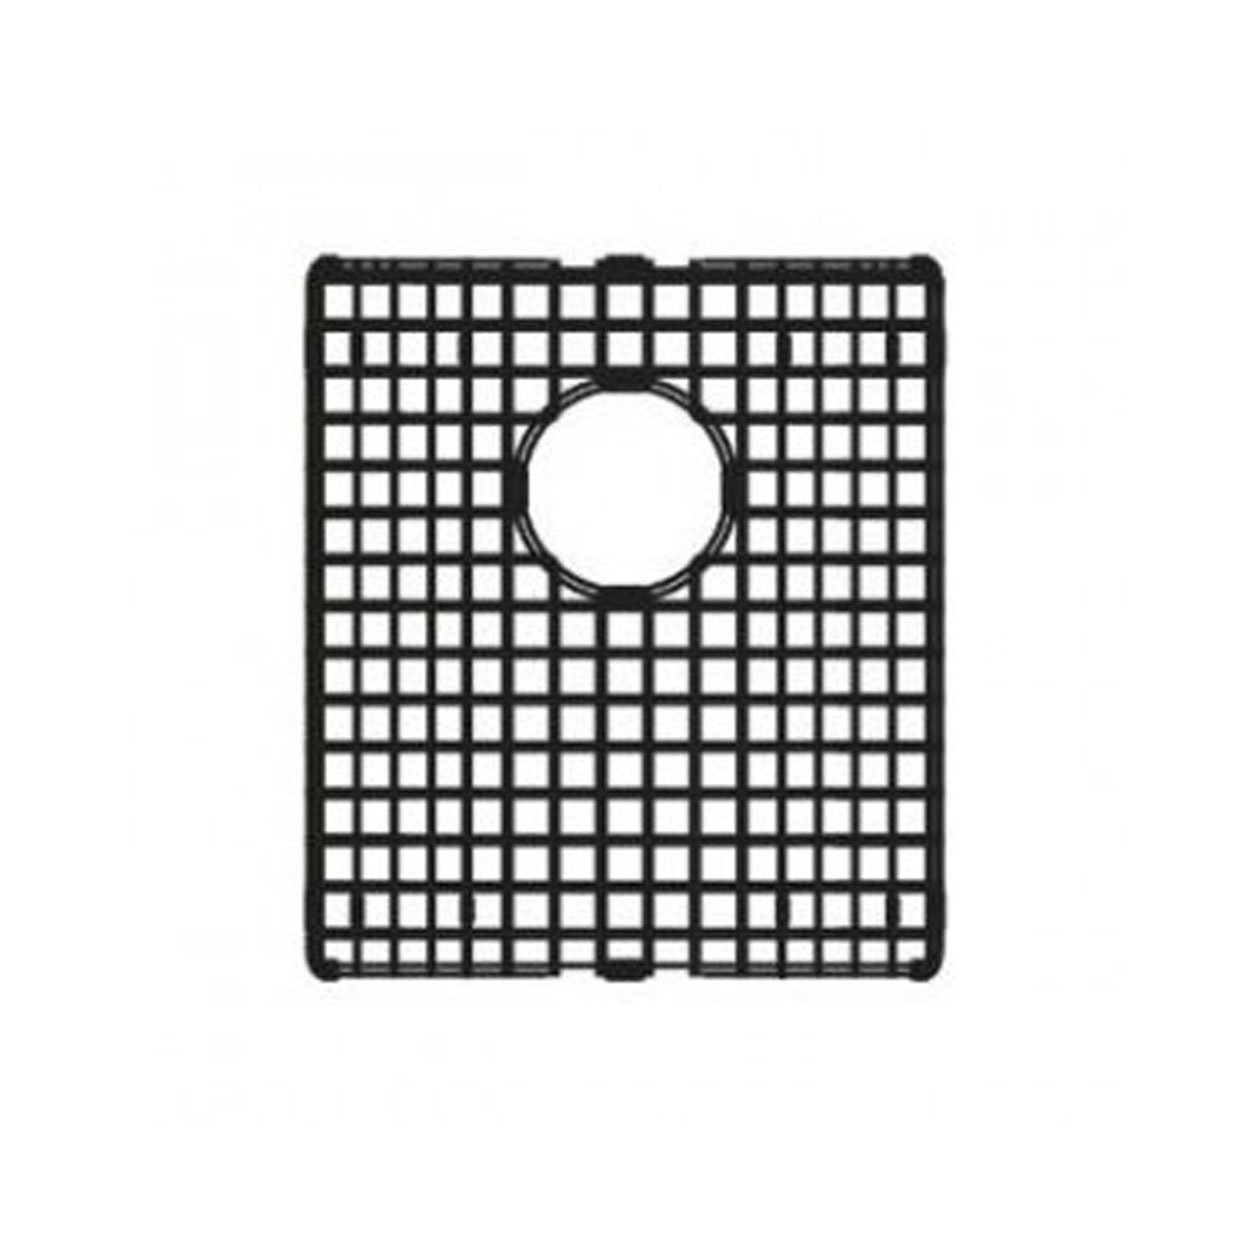 Franke FH16-36S Professional Series Bottom Sink Grid for PSX120339, Stainless Steel